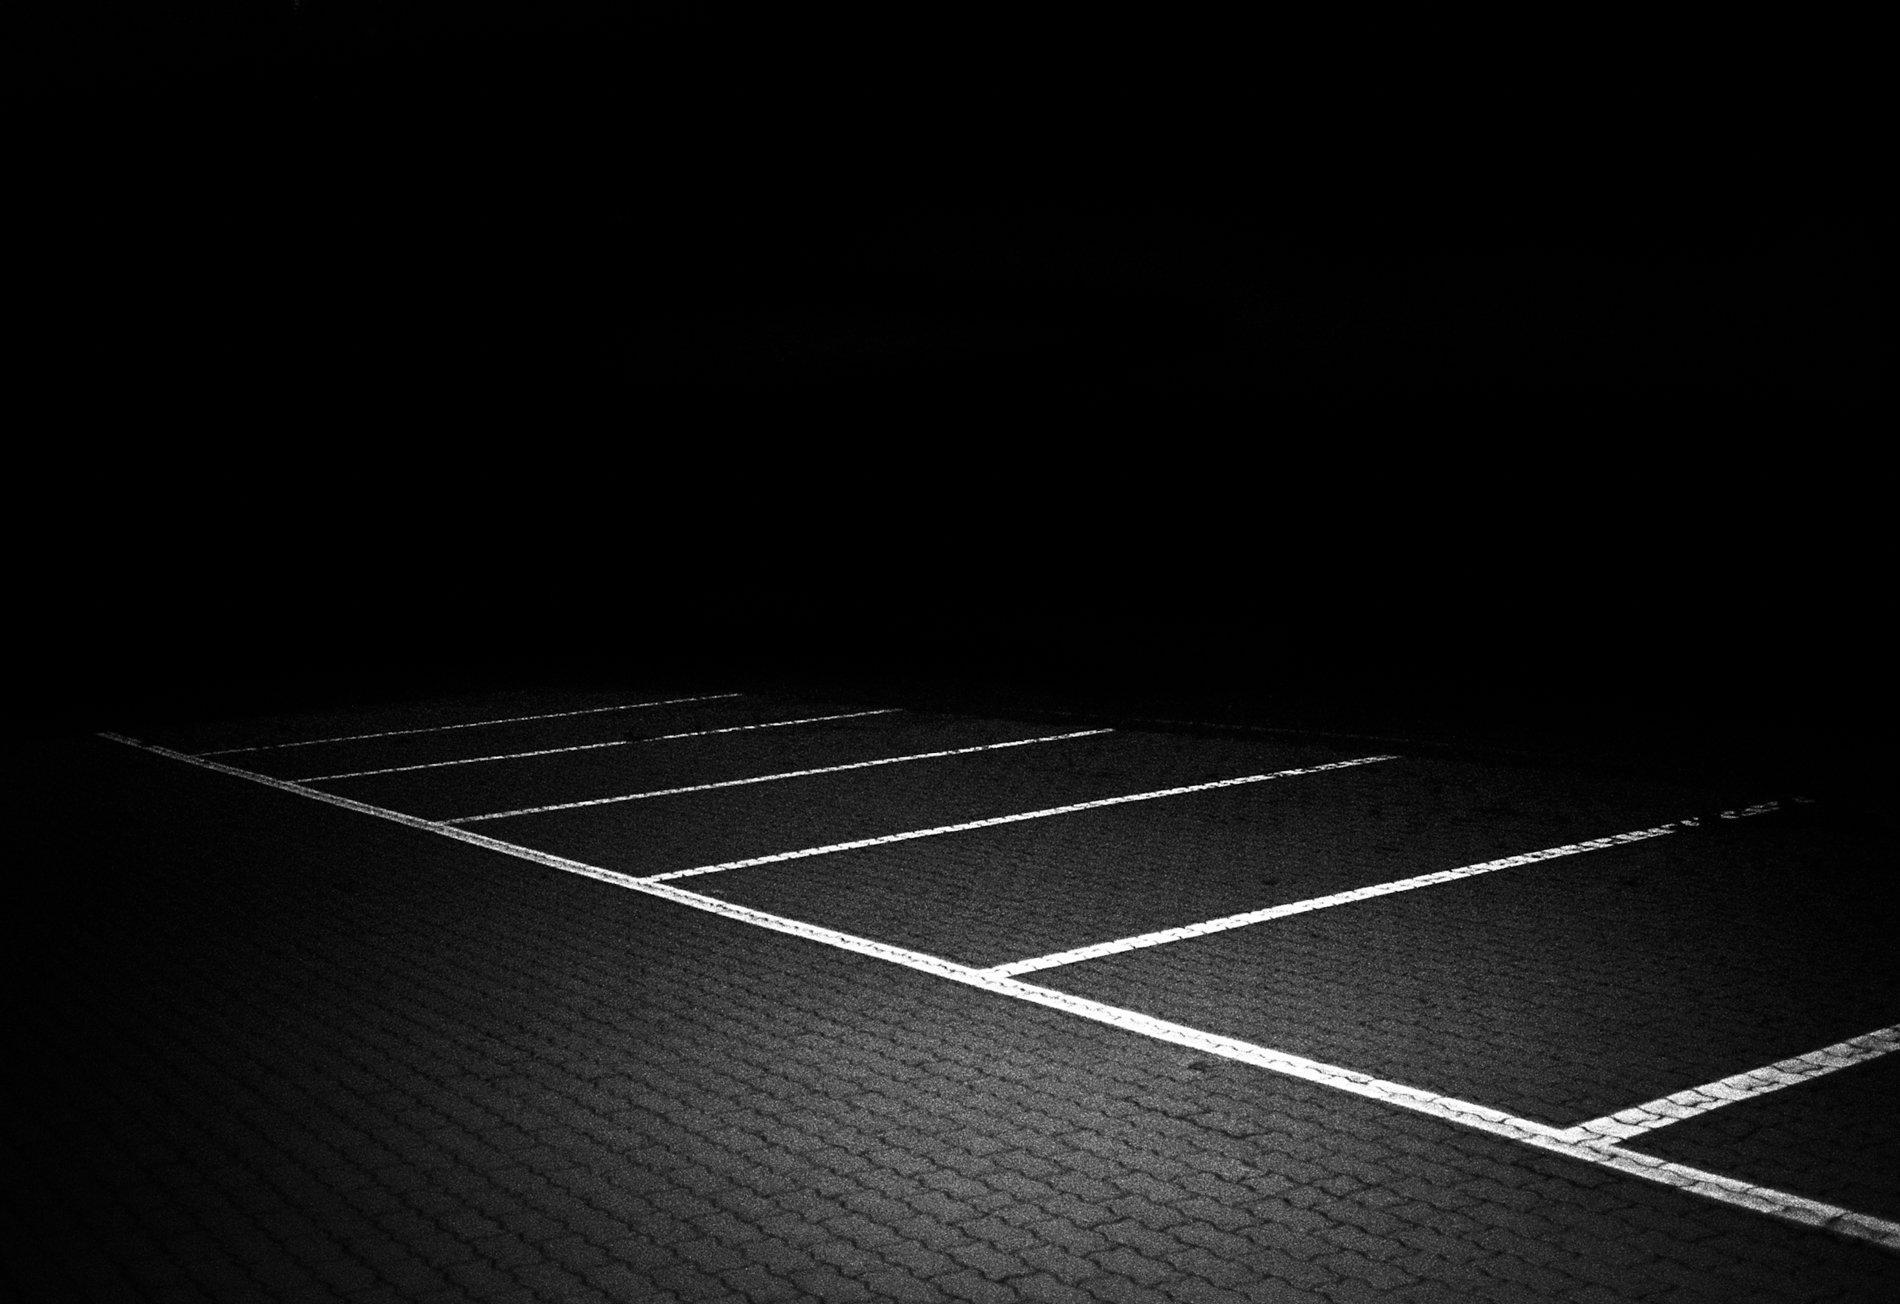 parking lot black and white photography, shallow depth of field, high contrast, by Francesco Merlini